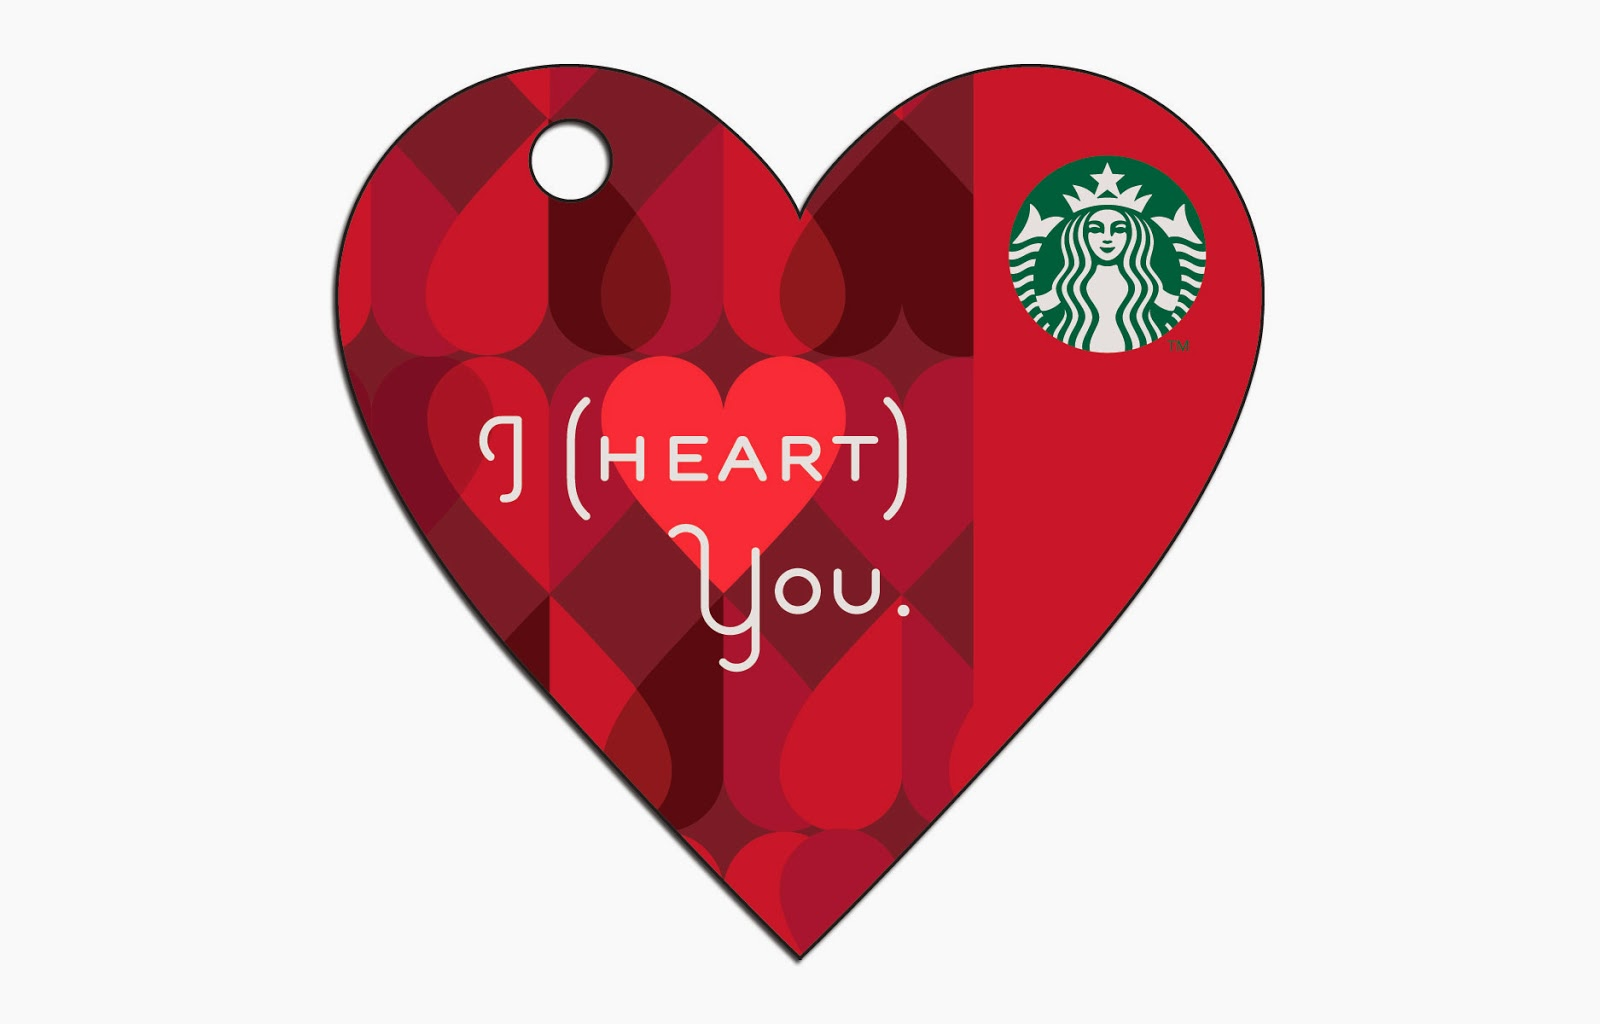 EXPRESS YOUR AFFECTION THIS VALENTINE'S WITH THE LIMITED EDITION VALENTINE'S DAY STARBUCKS® CARD AND MERCHANDISE.